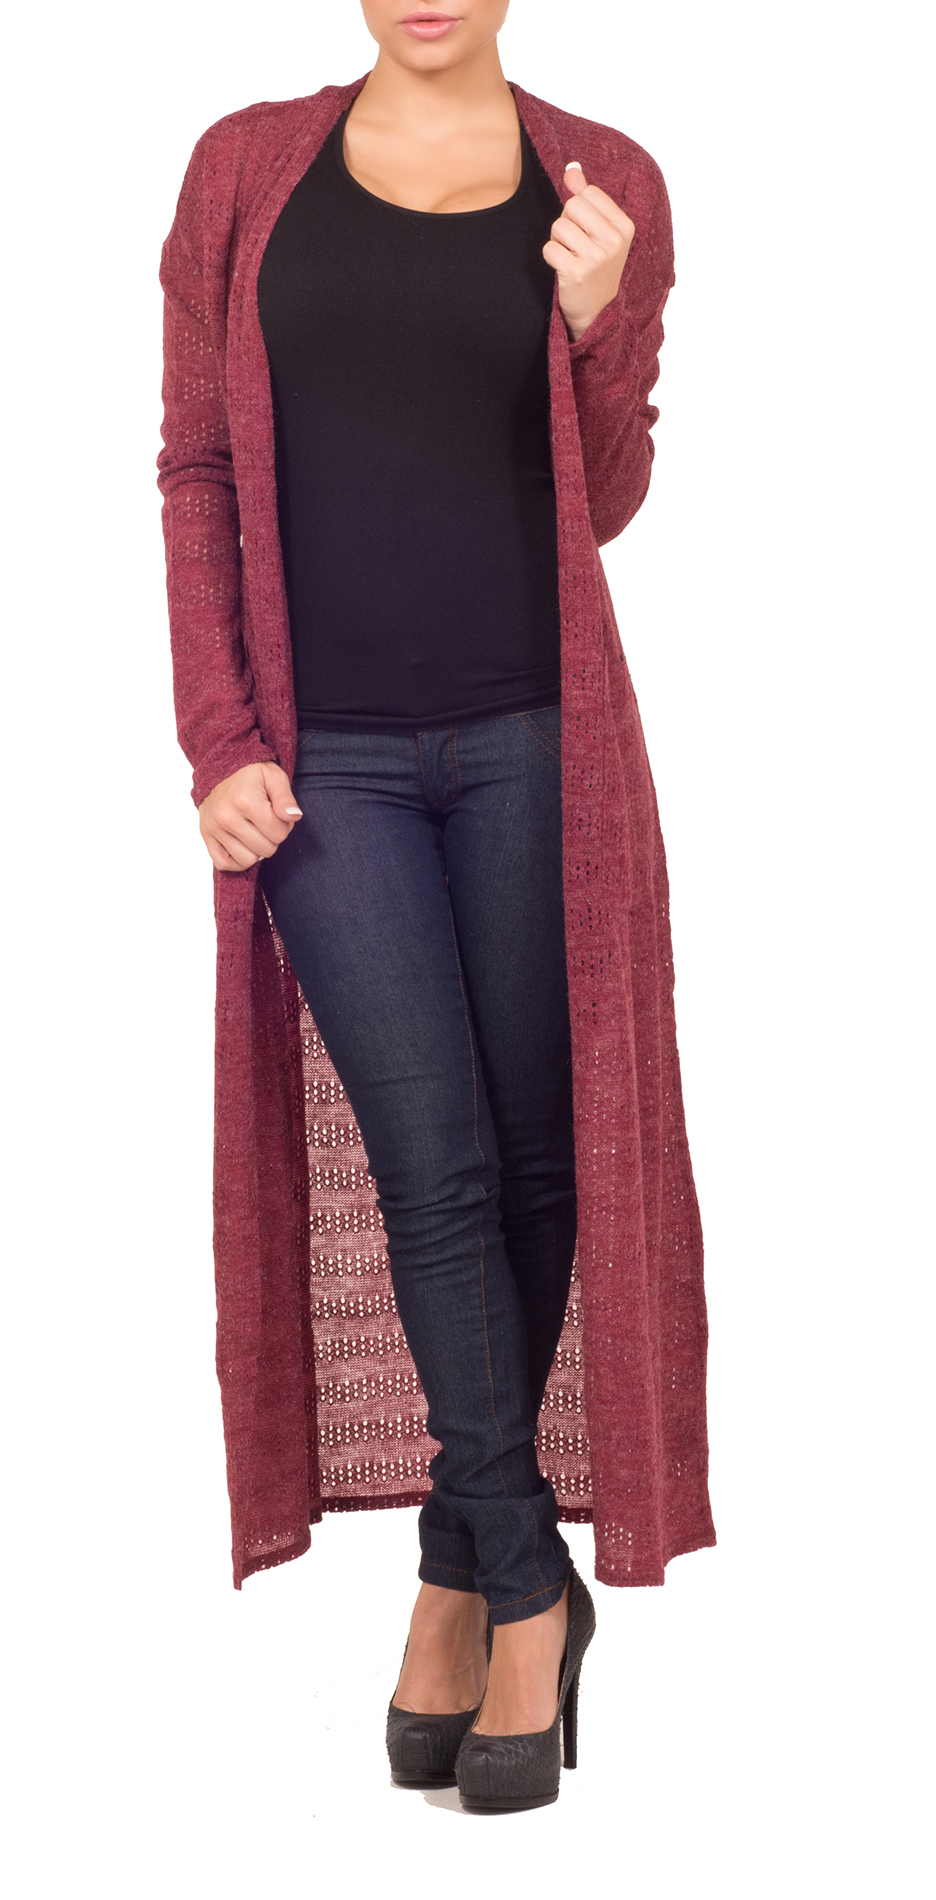 Hot From Hollywood Womens Sweater Front Pocket Open Front Long Sleeve Full Length Casual Cardigan at Sears.com